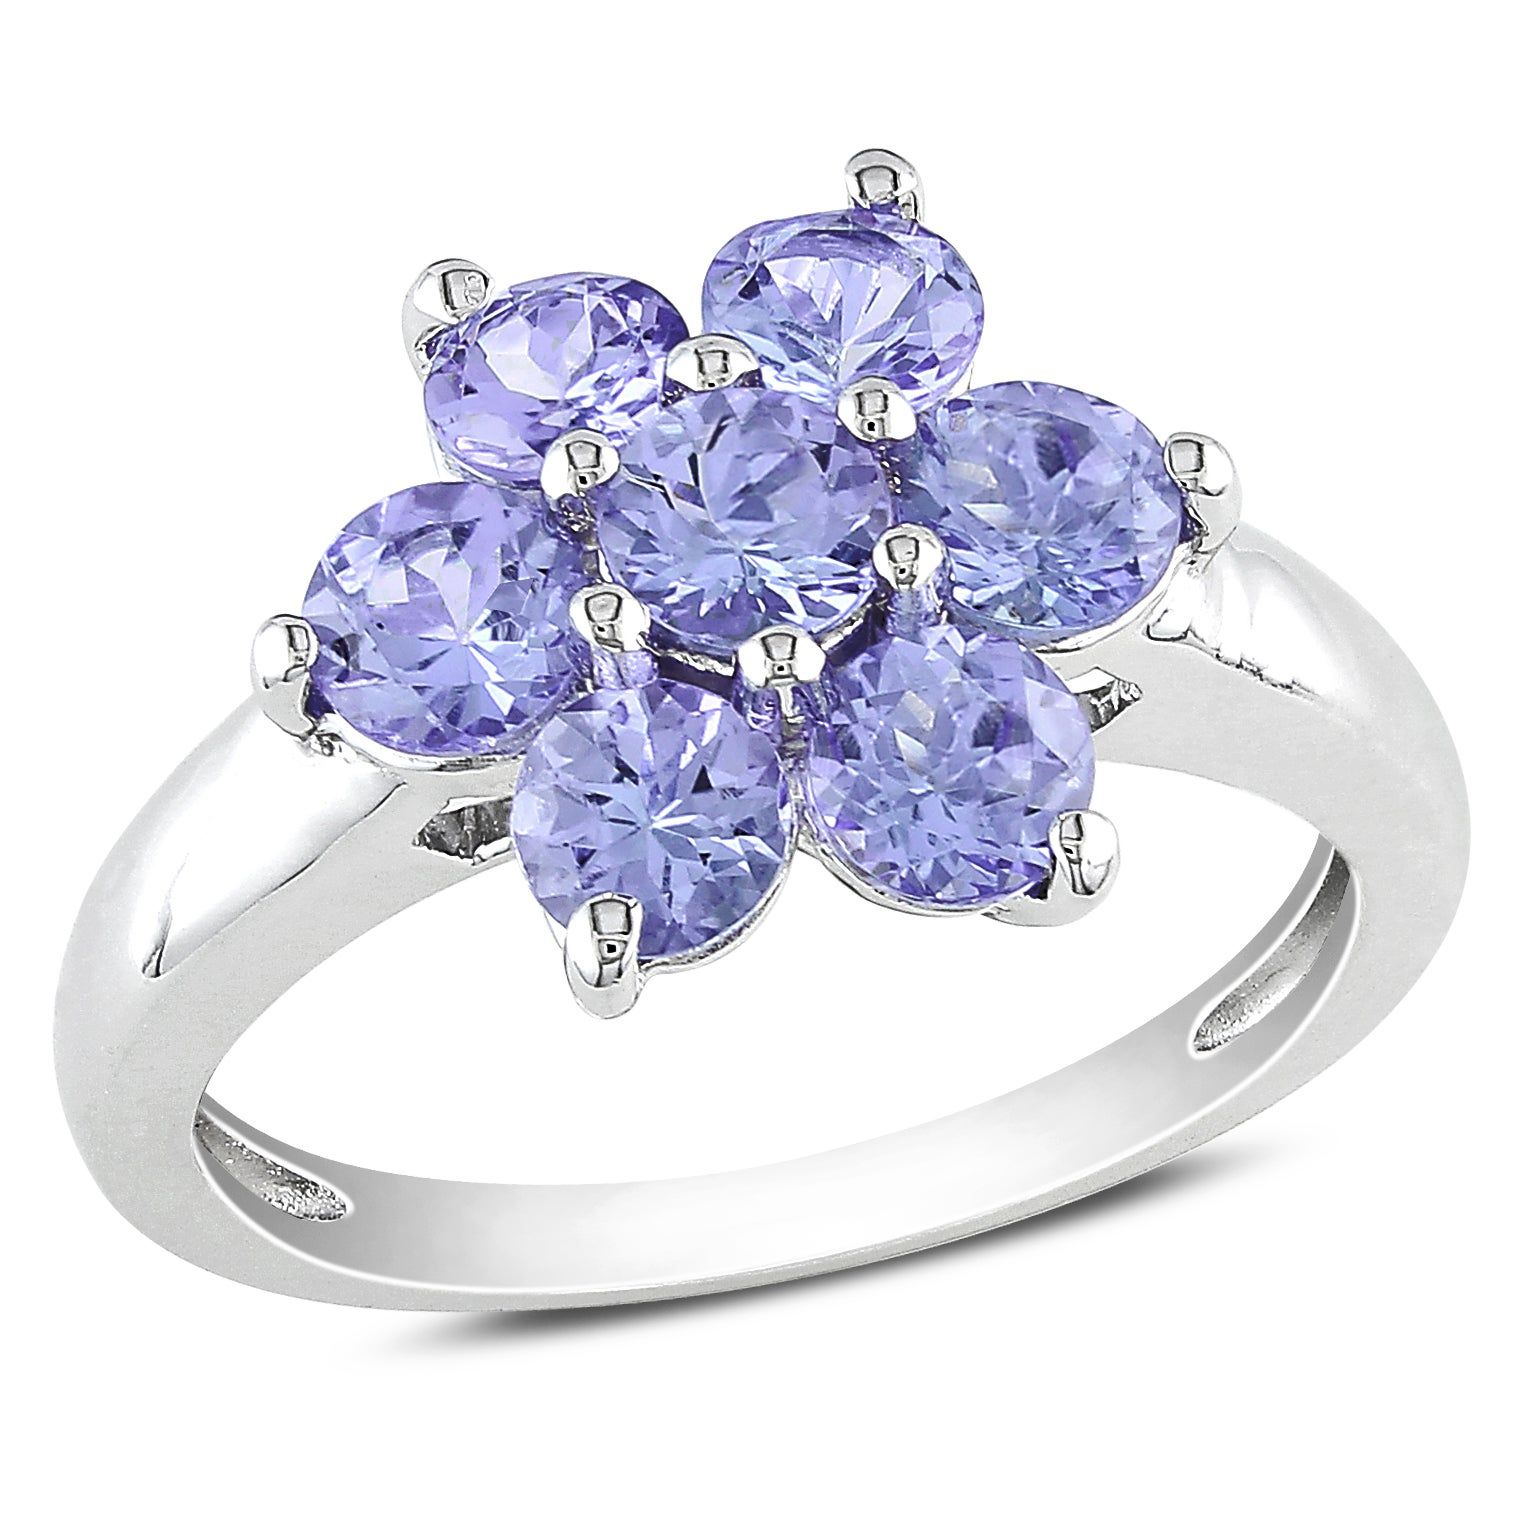 Miadora Sterling Silver Round Tanzanite Flower Ring Overstock Shopping To